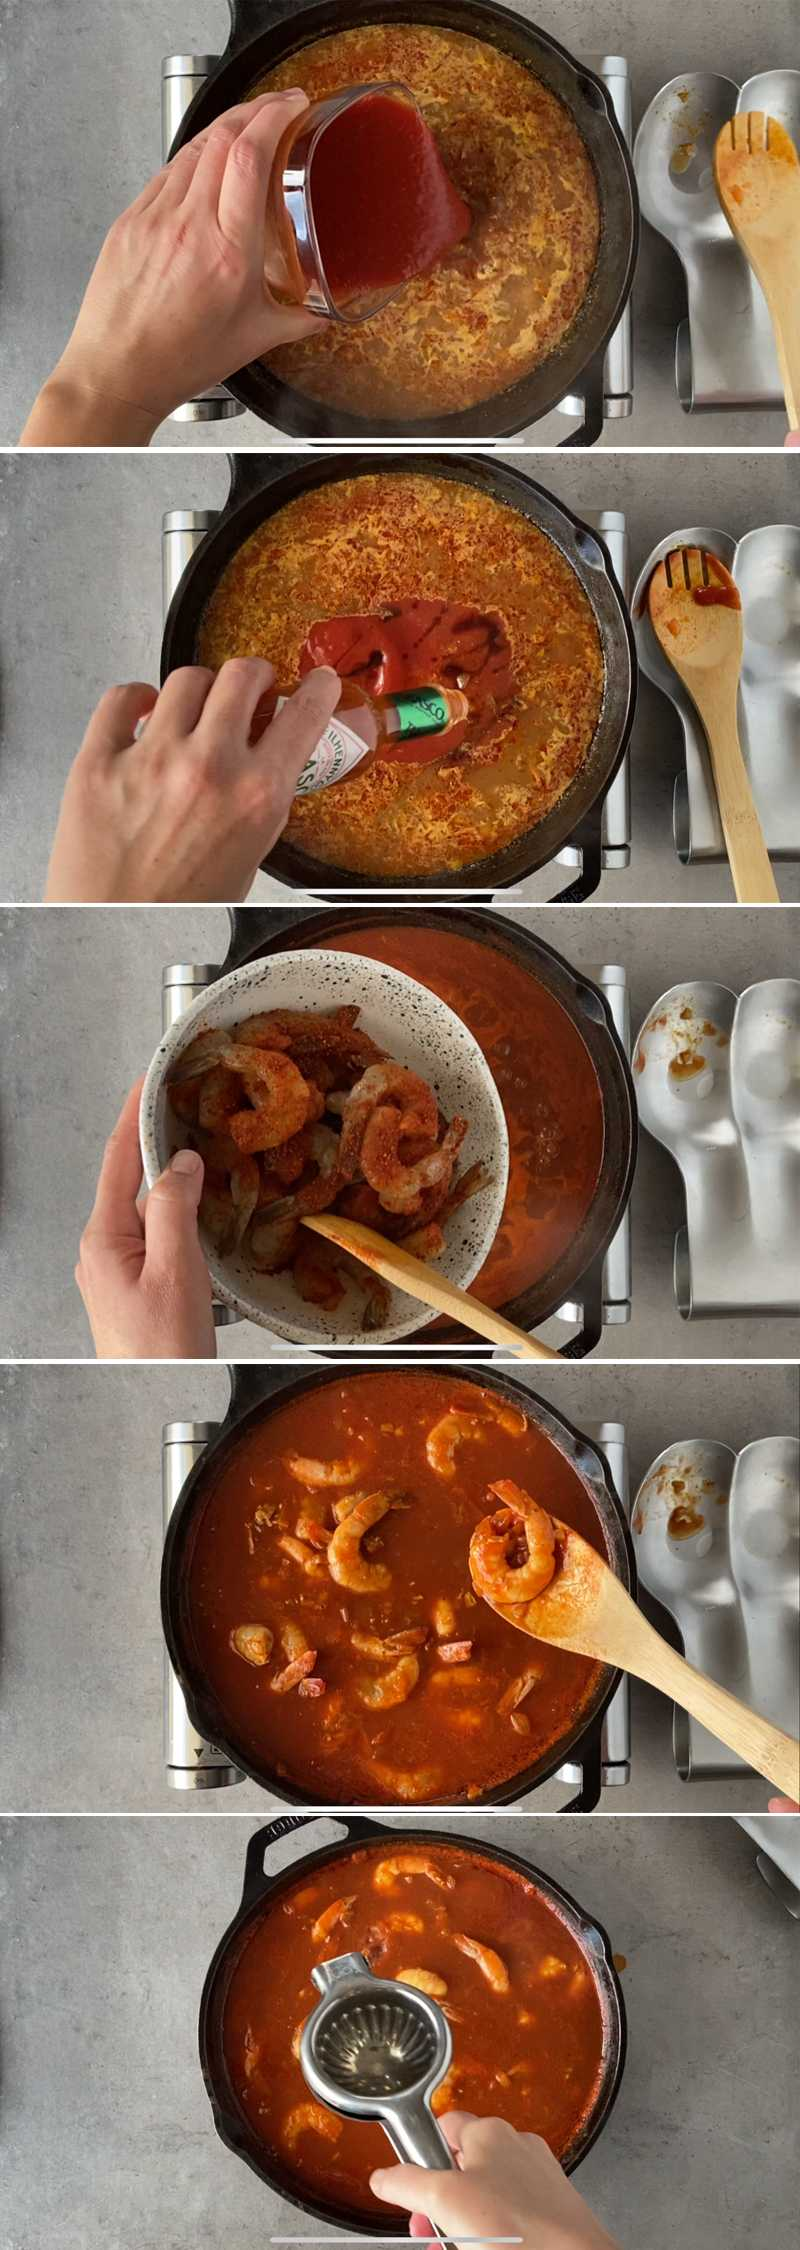 Image grid (part 2) with step to make spicy shrimp in skillet with beer sauce a la clamato.